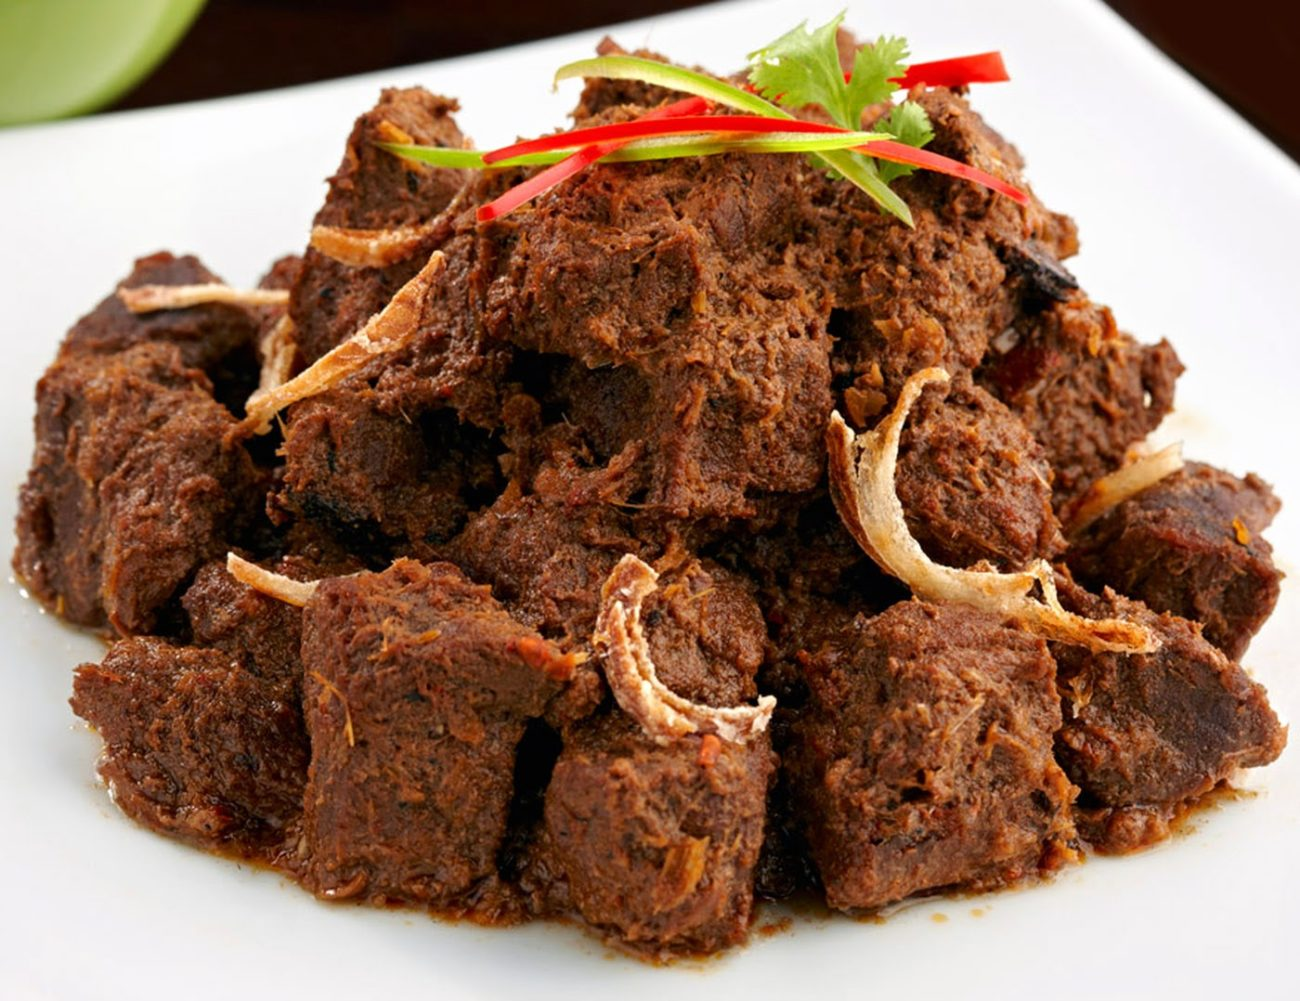 BEEF RENDANG MEAL   Generations-old family recipe of traditional Indonesian beef rendang with a healthy twist. Slow cooked grass feed beef marinated in coconut milk & Balinese spices   65K IDR